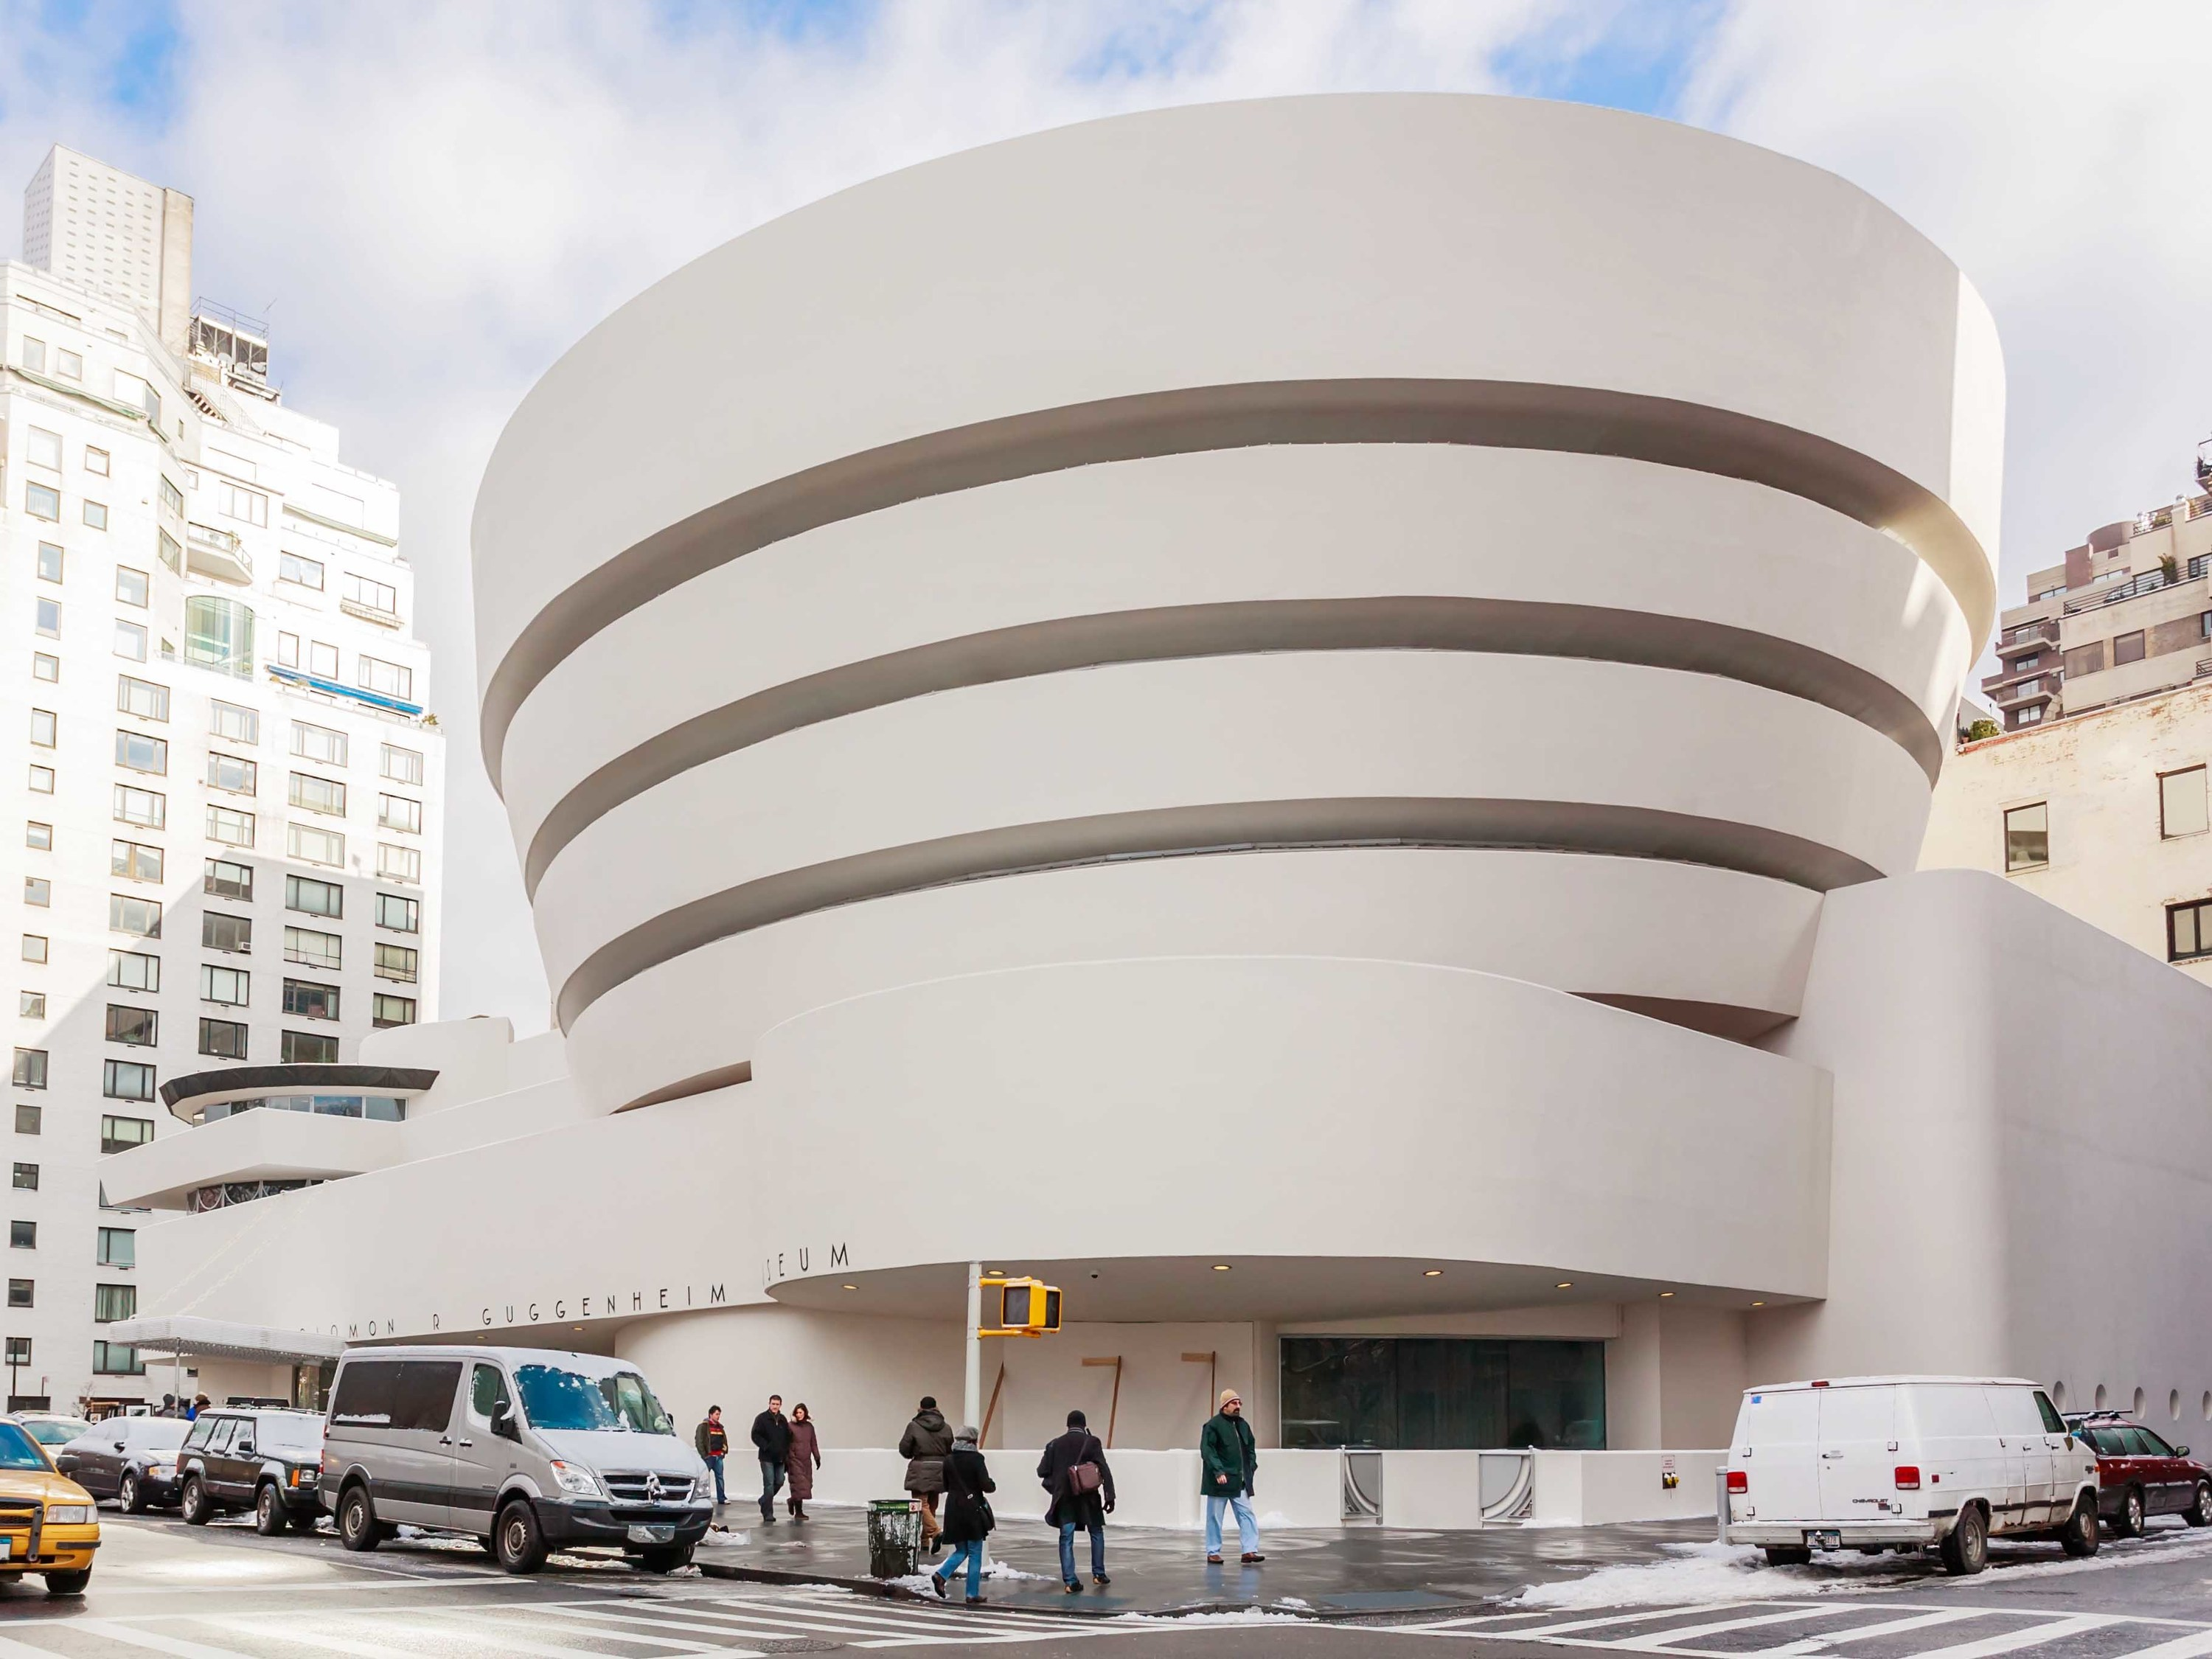 Solomon R. Guggenheim, New York City, NYC, museum